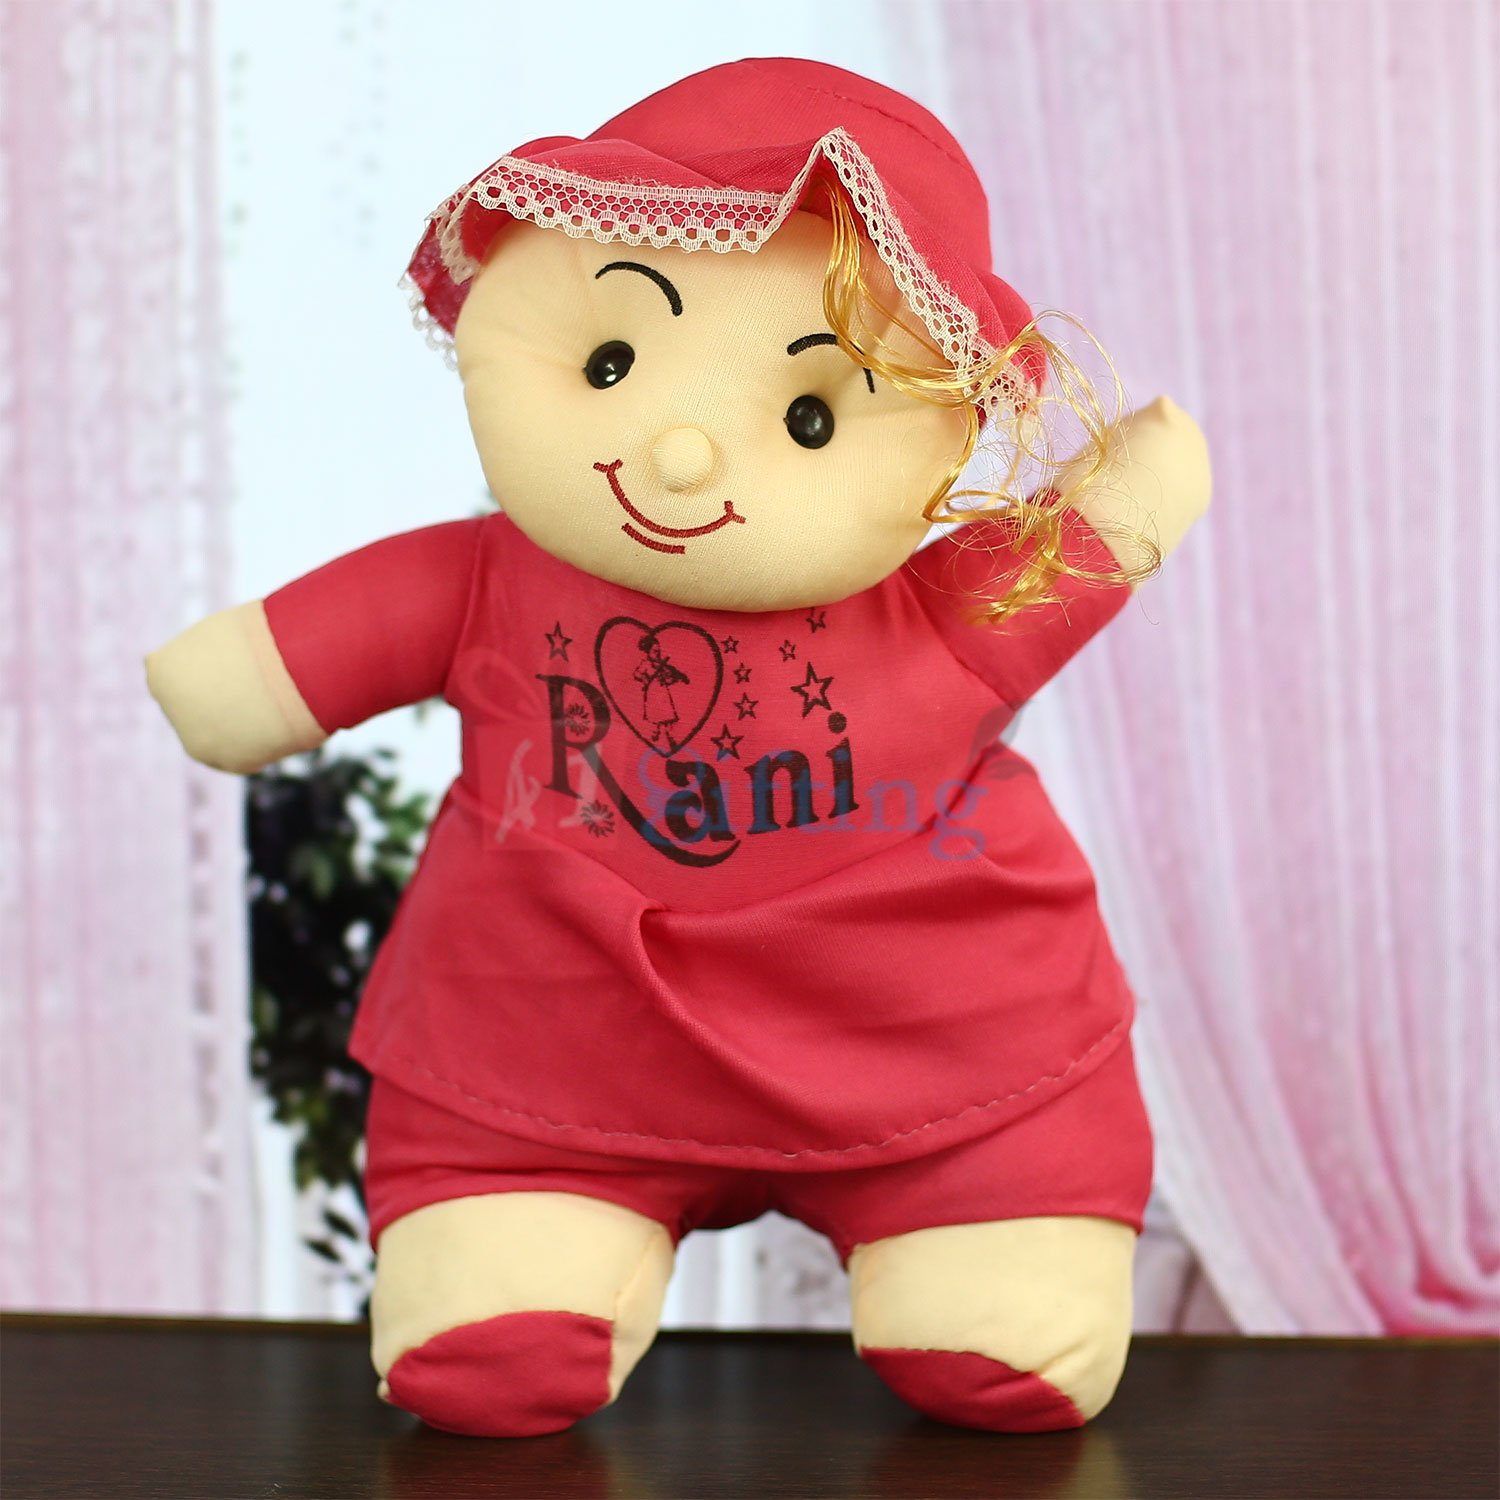 Smiling Rani Soft Toy with Cap